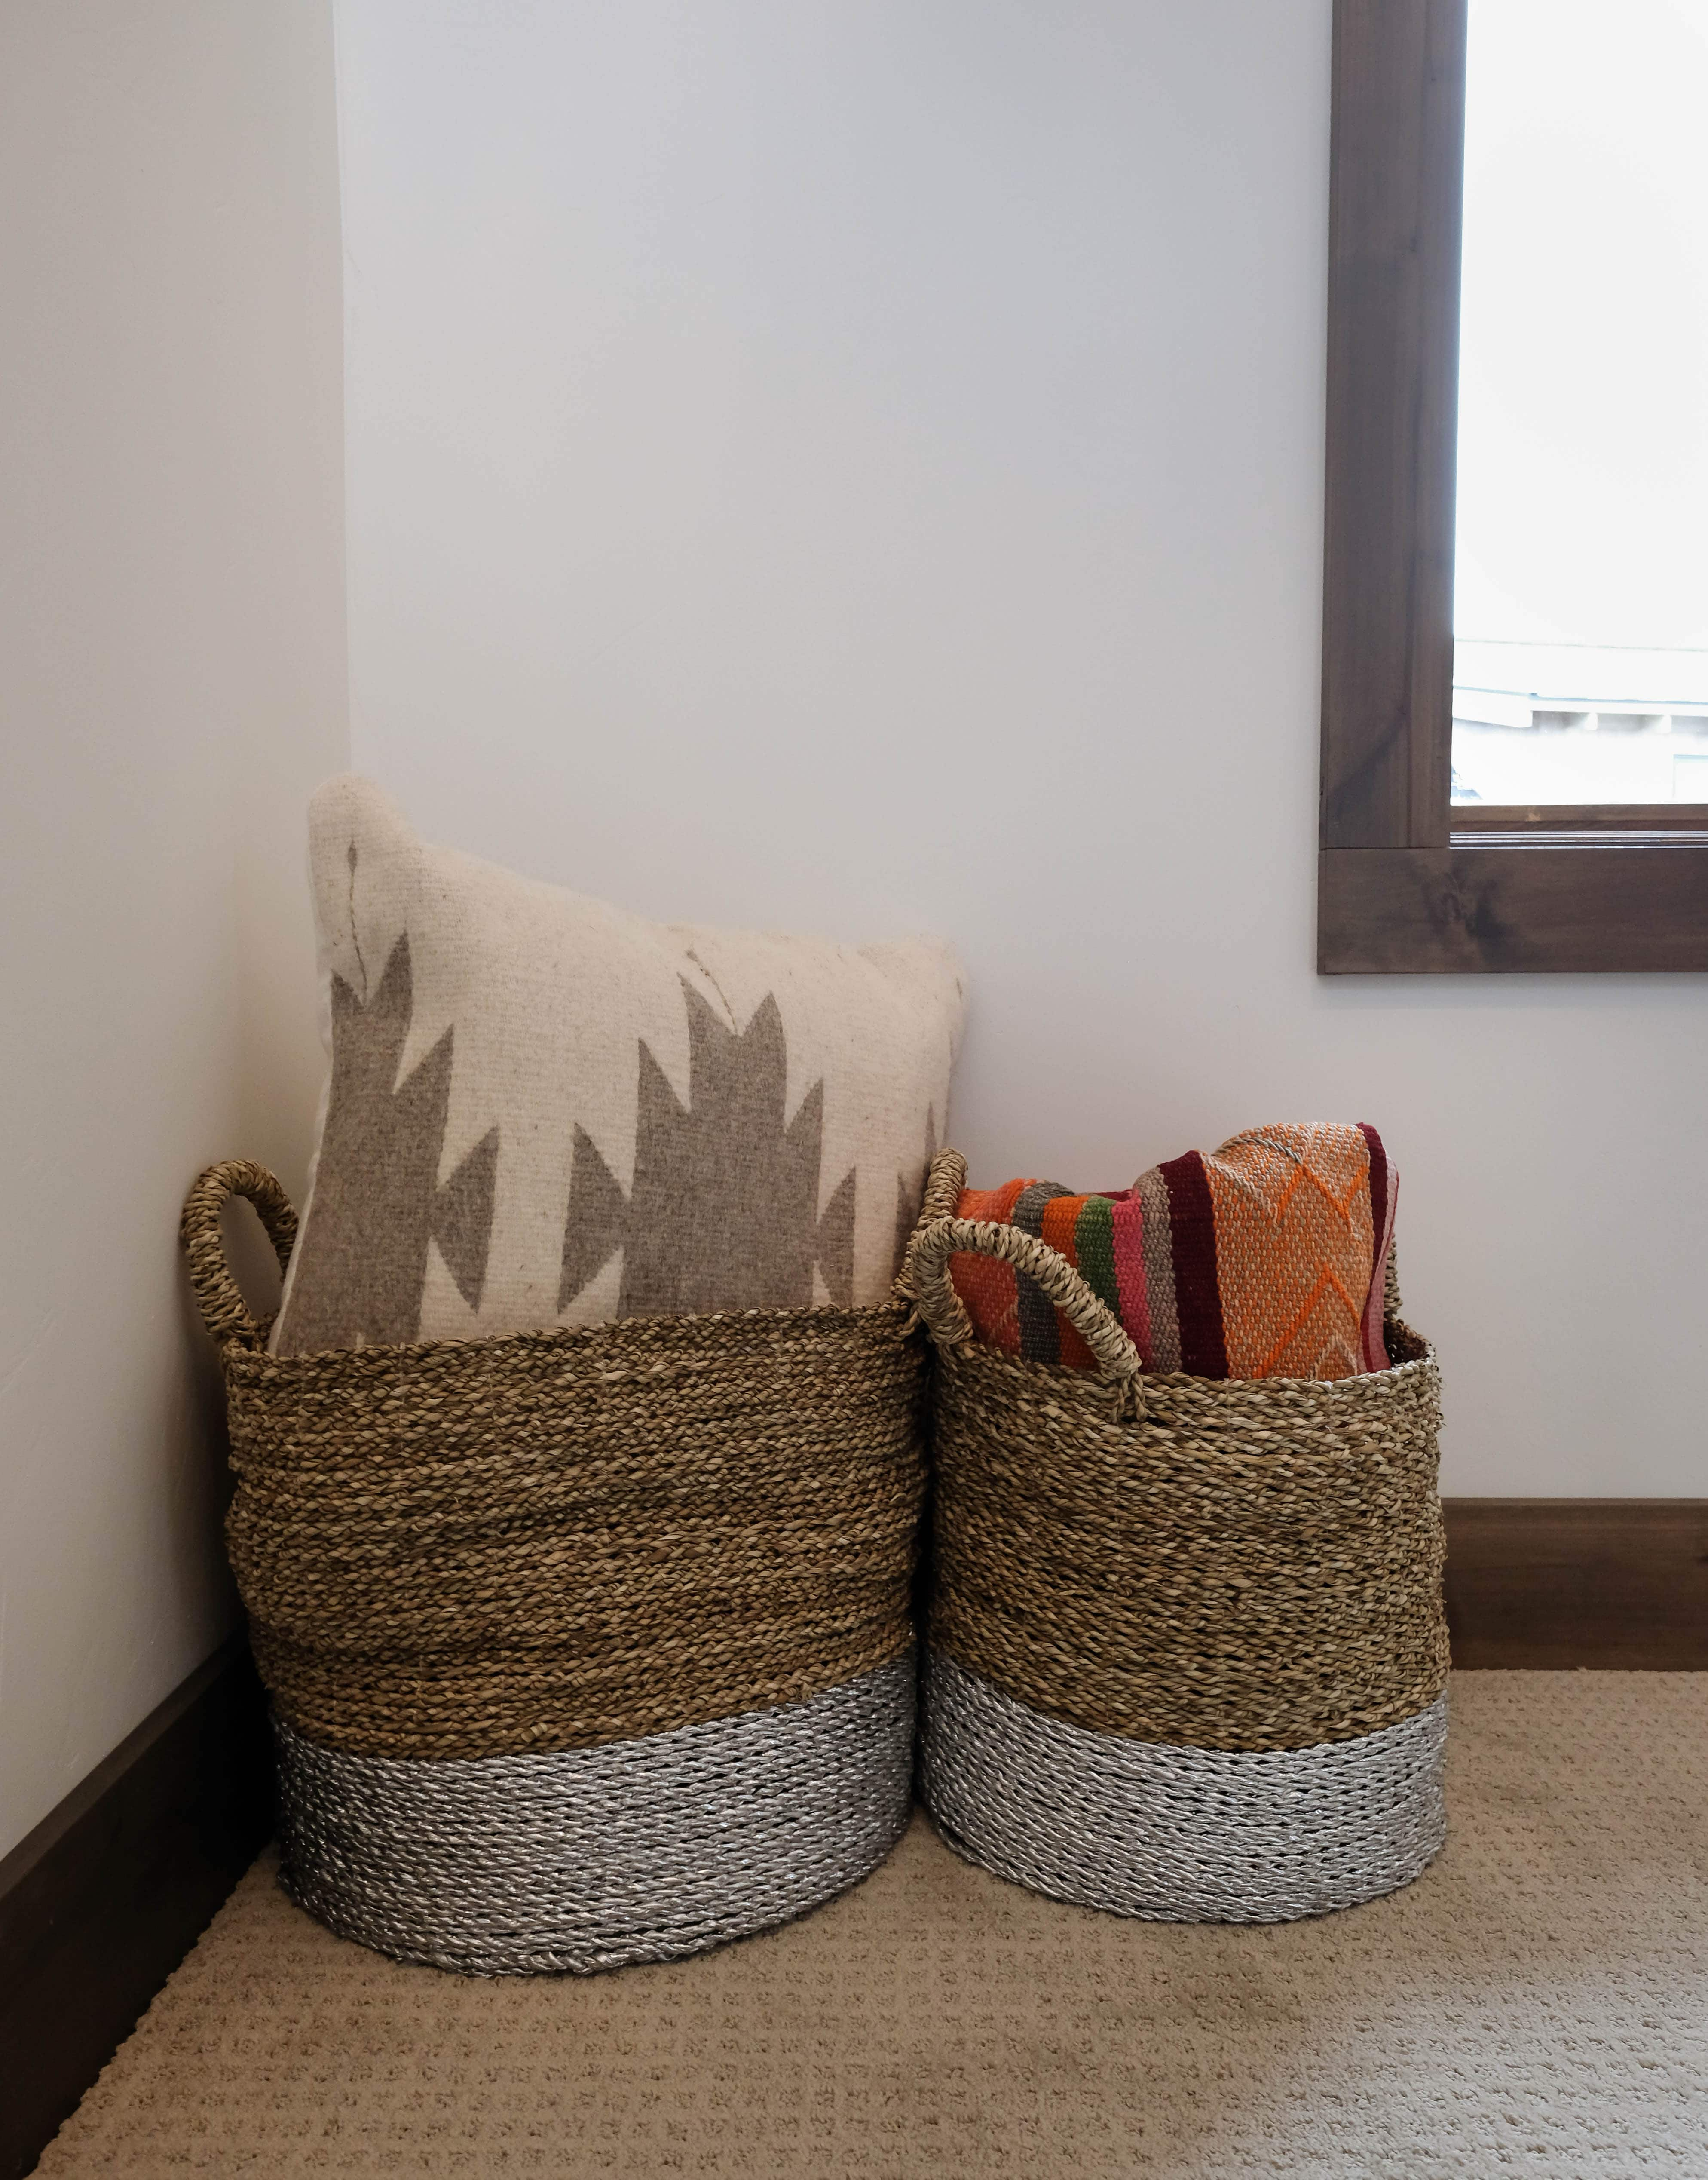 Parade of Homes woven baskets with throw pillows